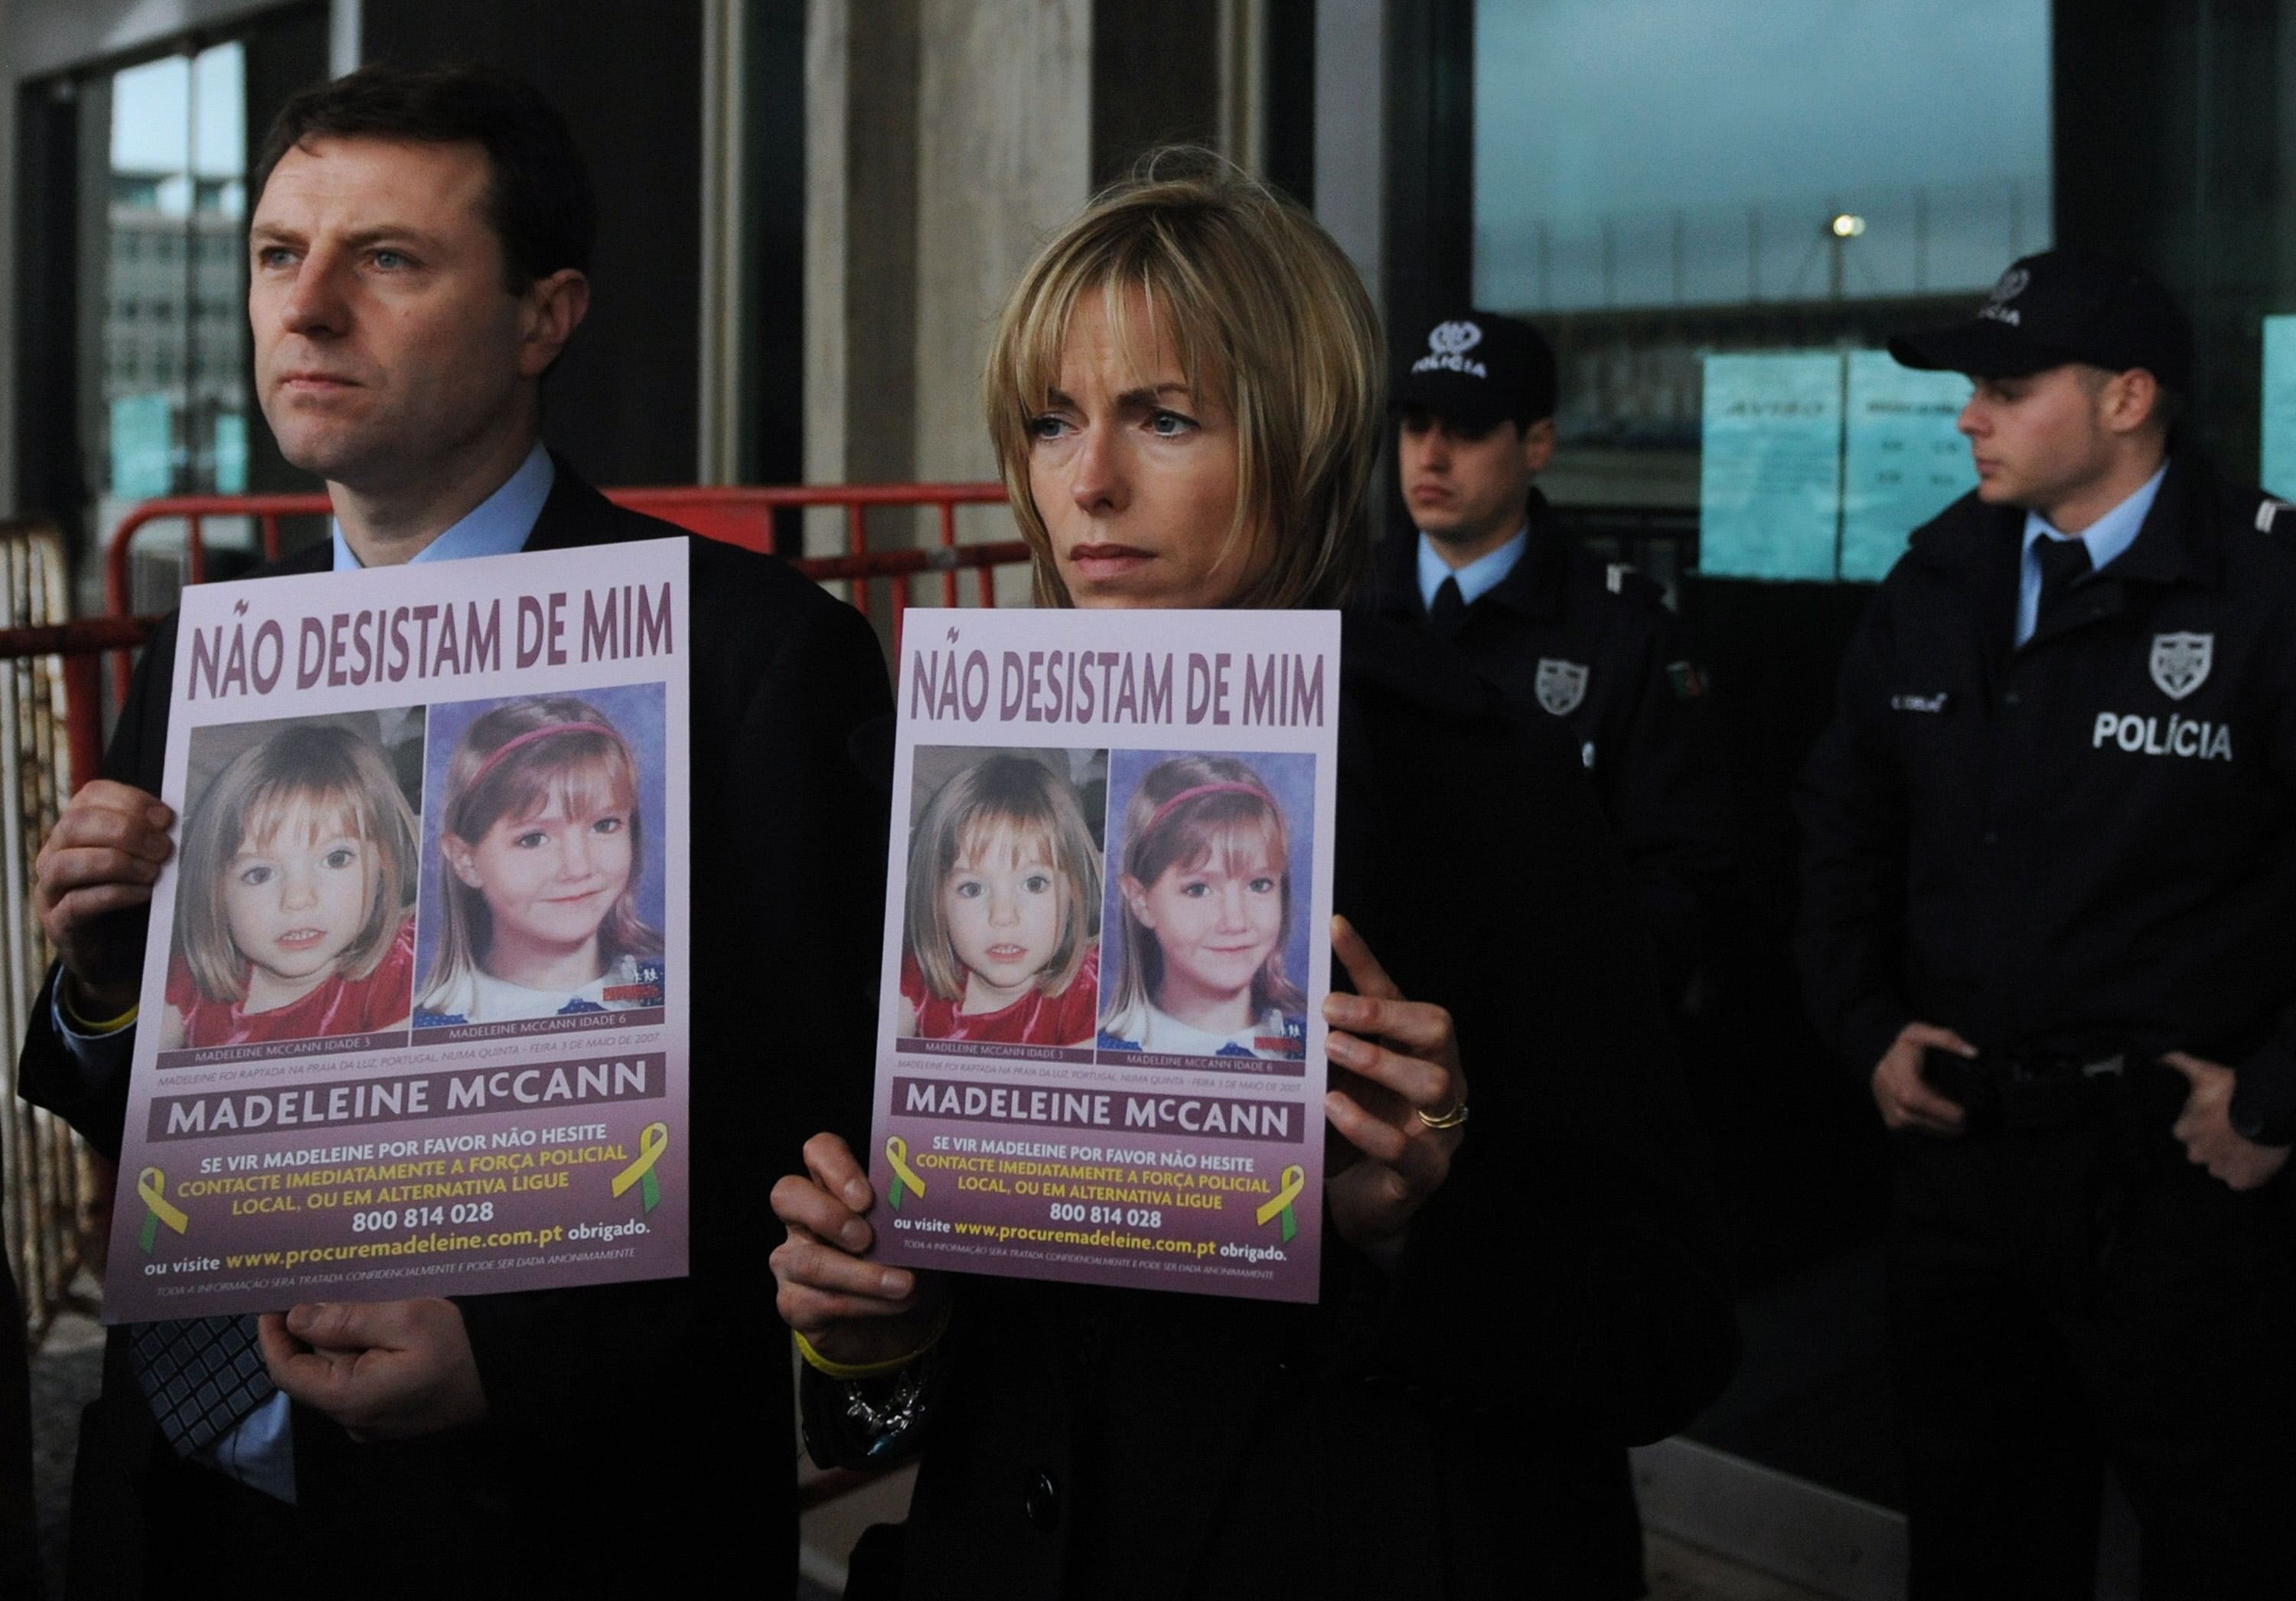 Belgium reopens case with possible link to McCann suspect